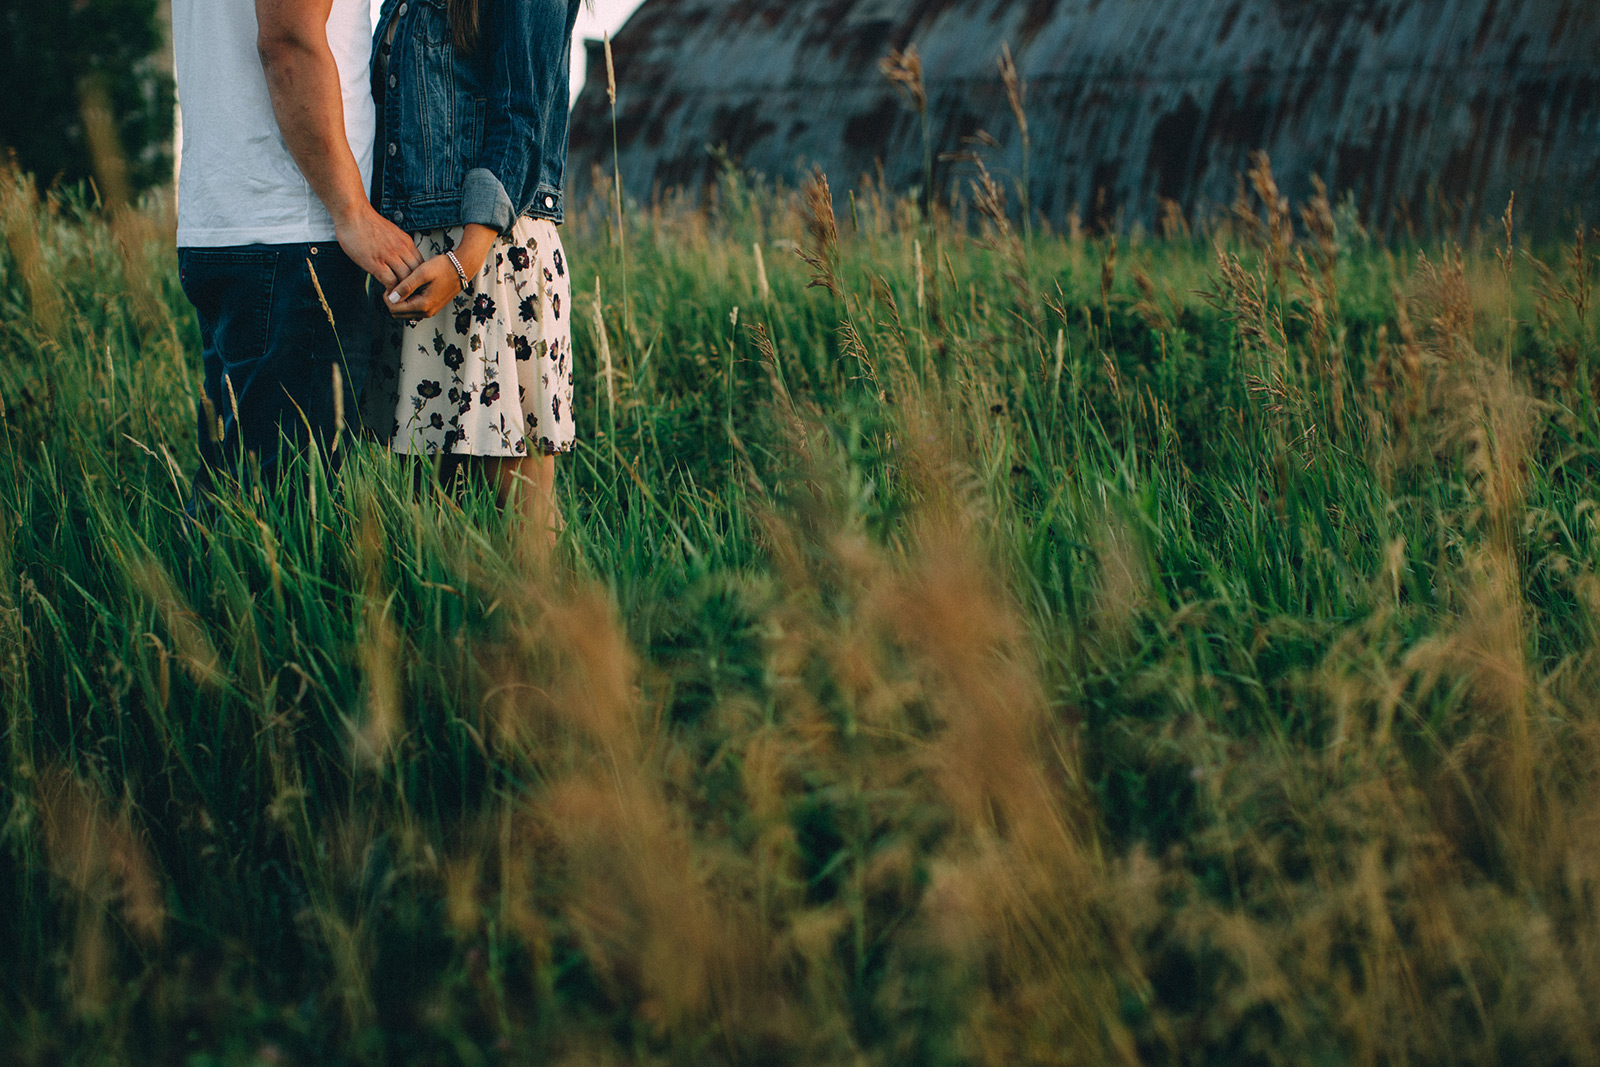 Rural-Ontario-modern-lifestyle-engagement-session-Sam-Wong-Visual-Cravings-AnJ_17